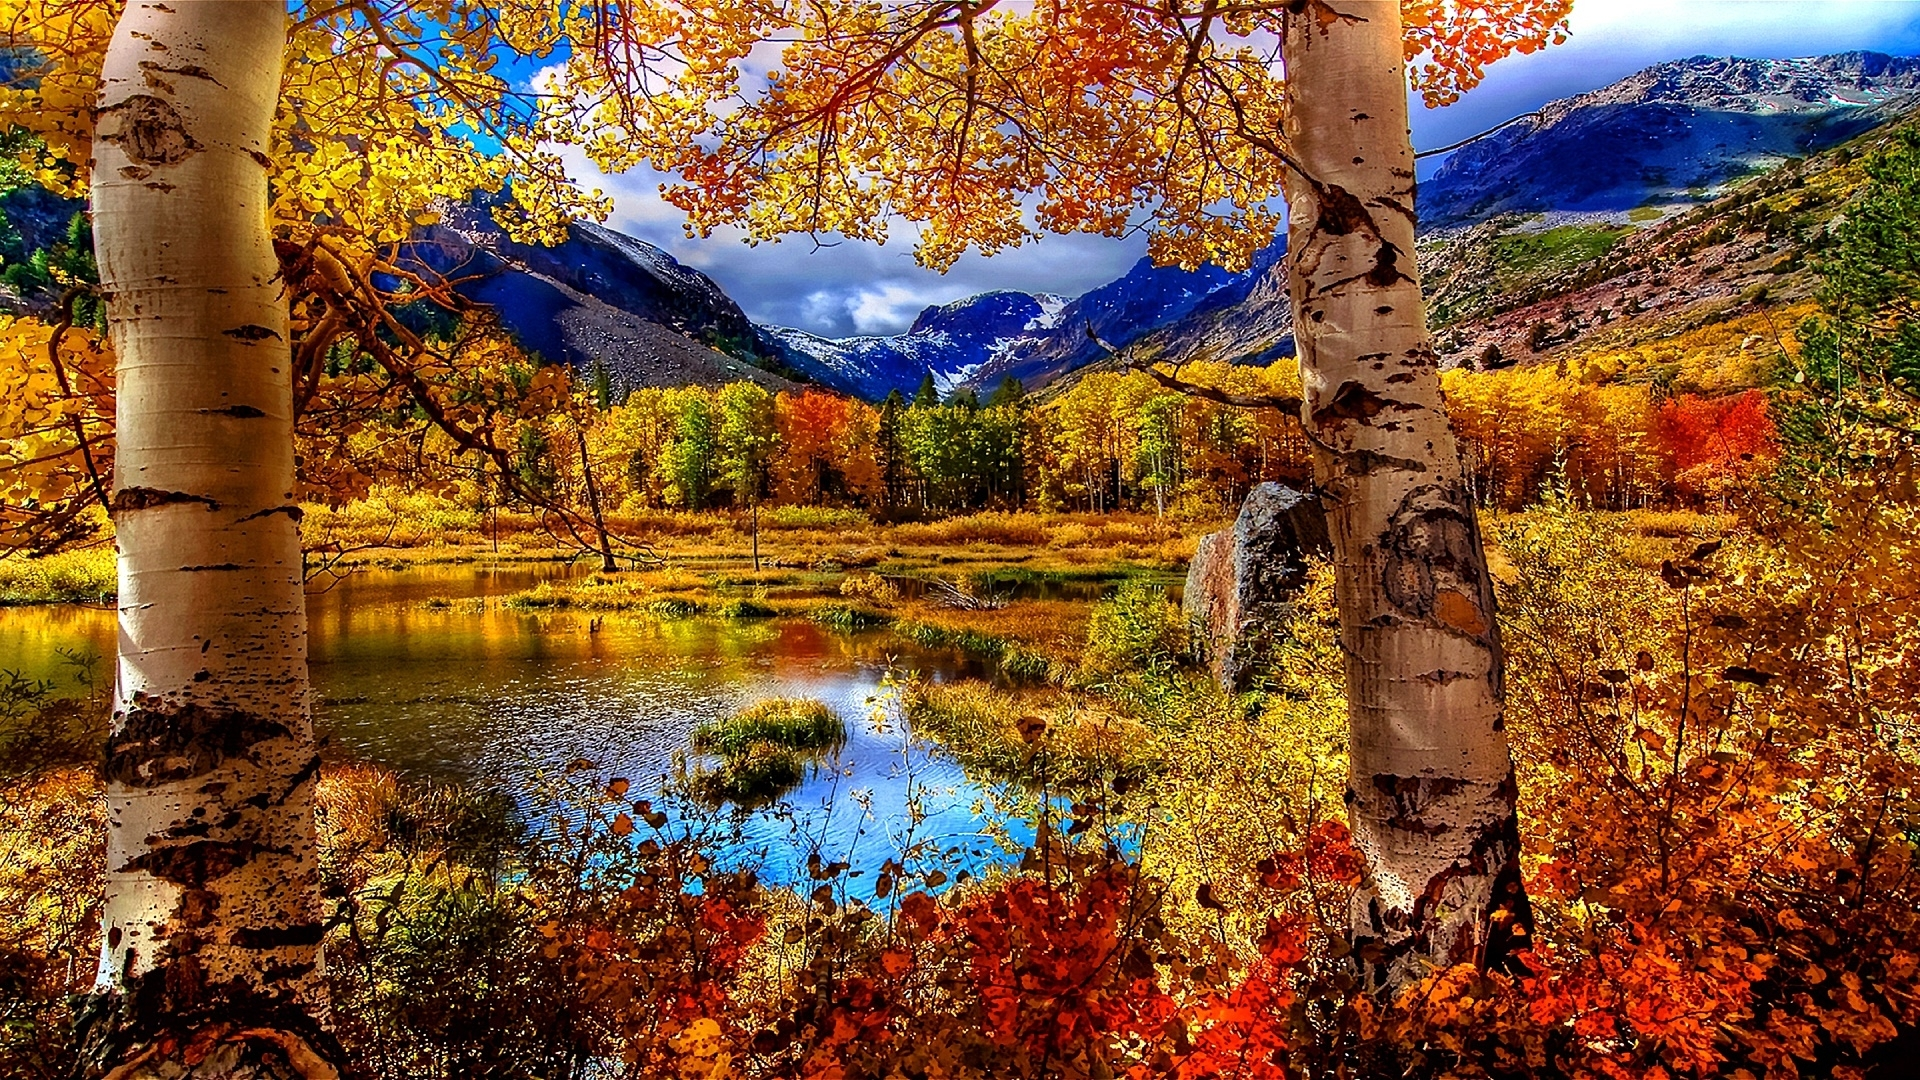 autumn scenery wallpaper | wallpaper studio 10 | tens of thousands